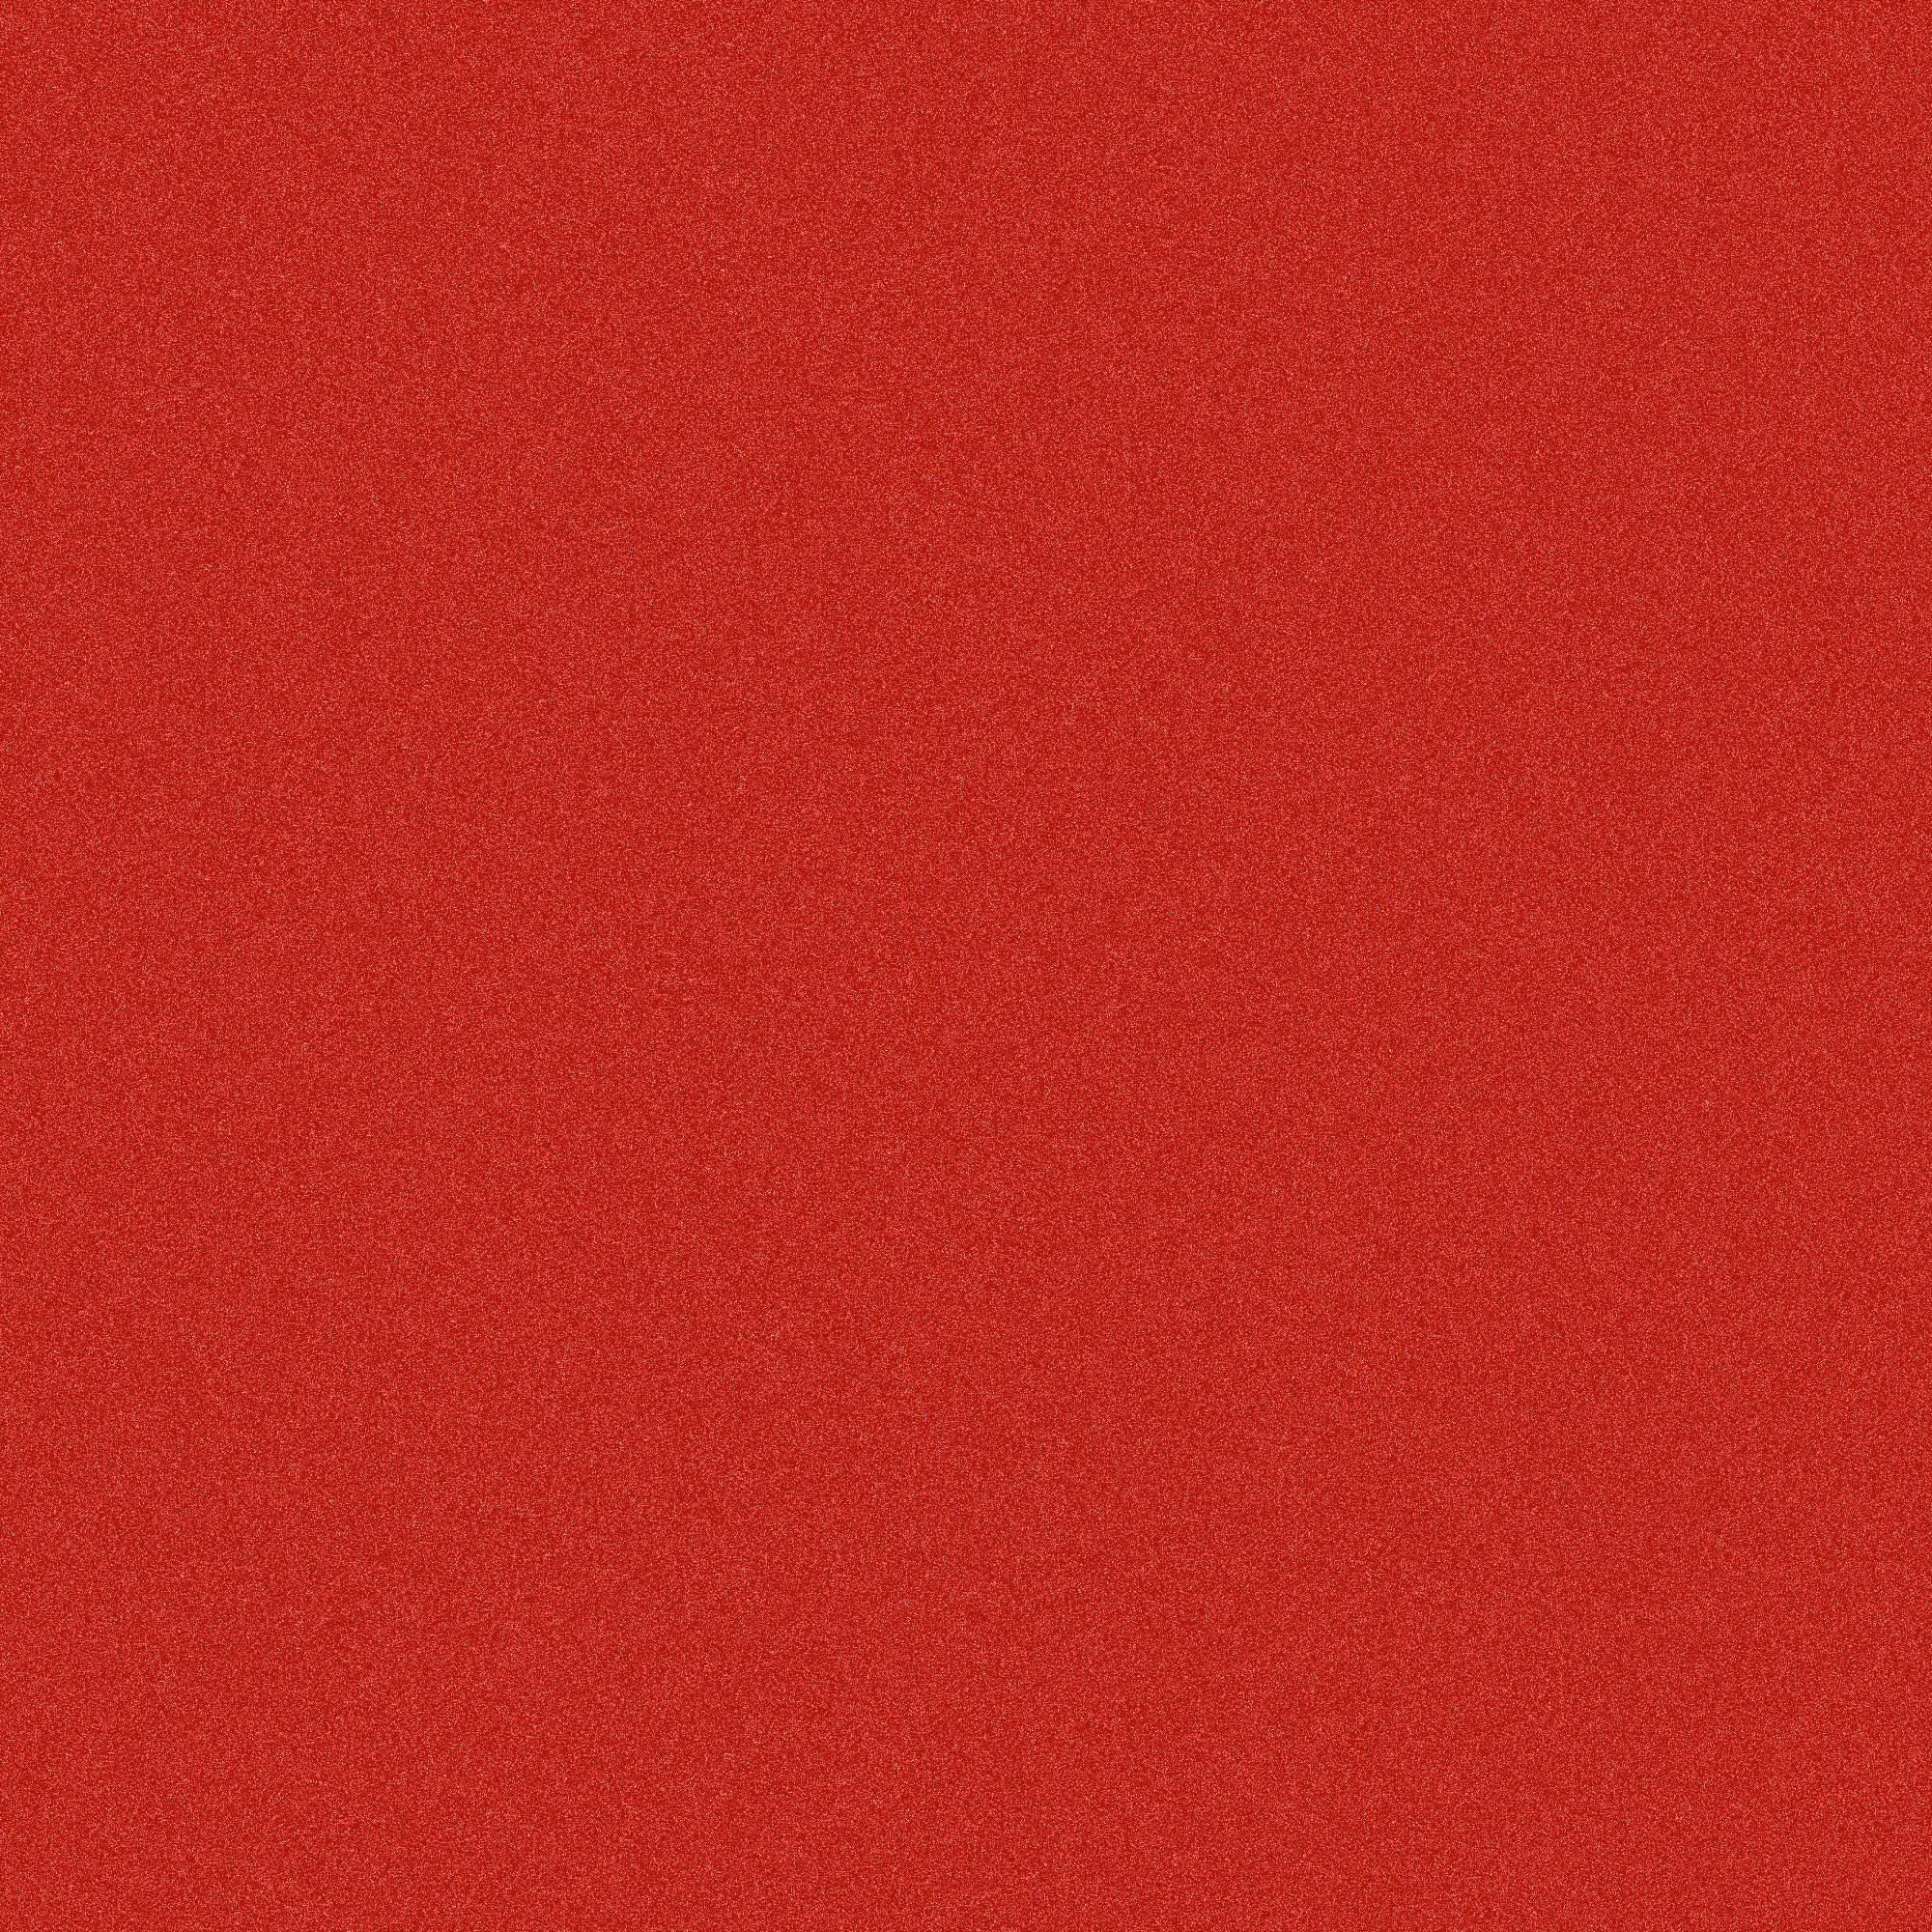 Quot Red Quot Noise Background Texture Png Public Domain Icon